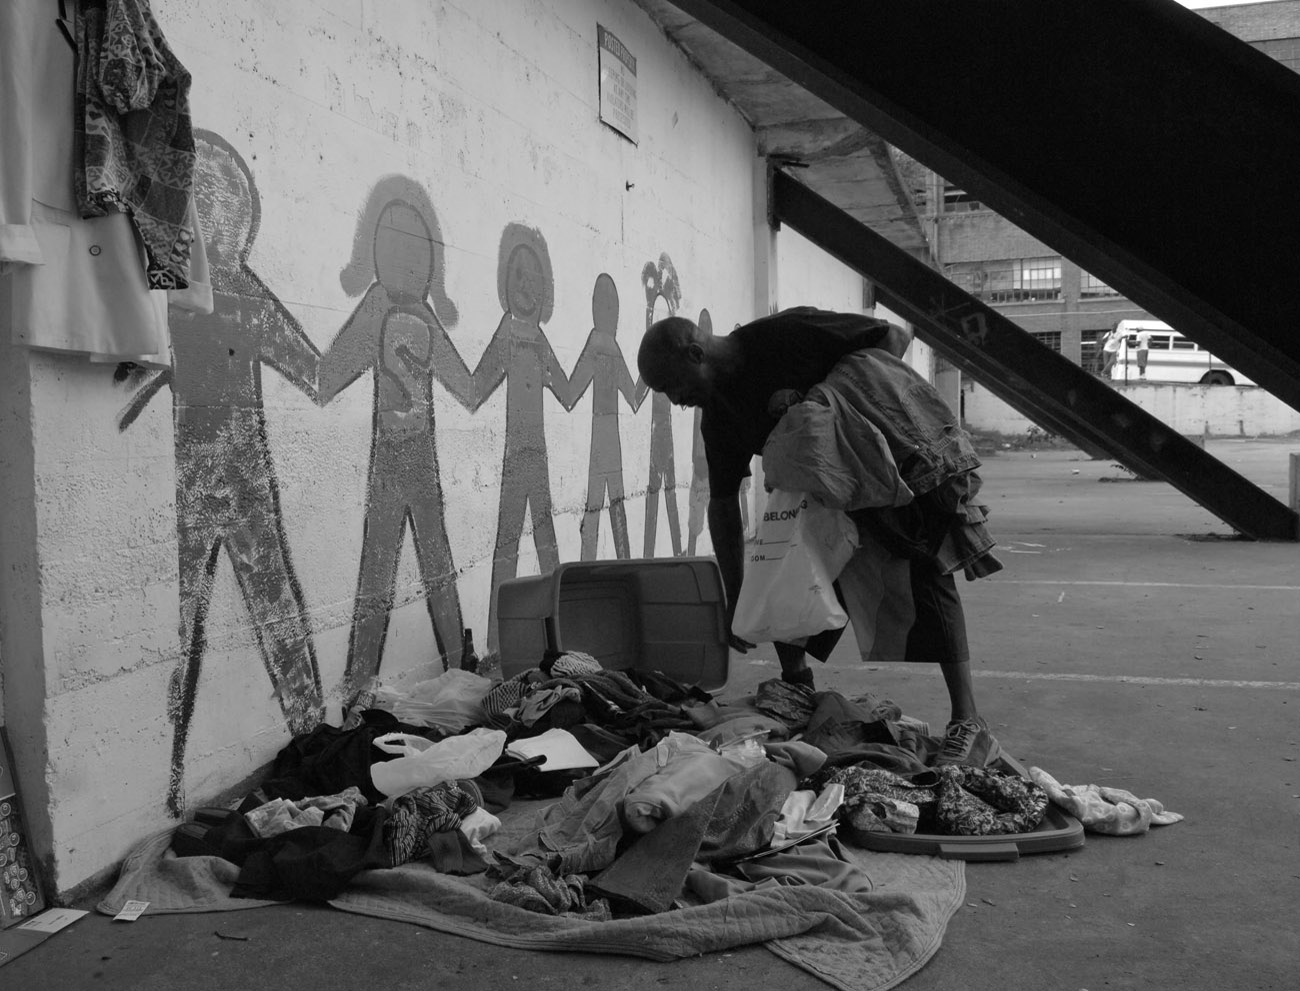 A homeless man sifts through discarded clothing near a homeless shelter, looking for something that might fit.